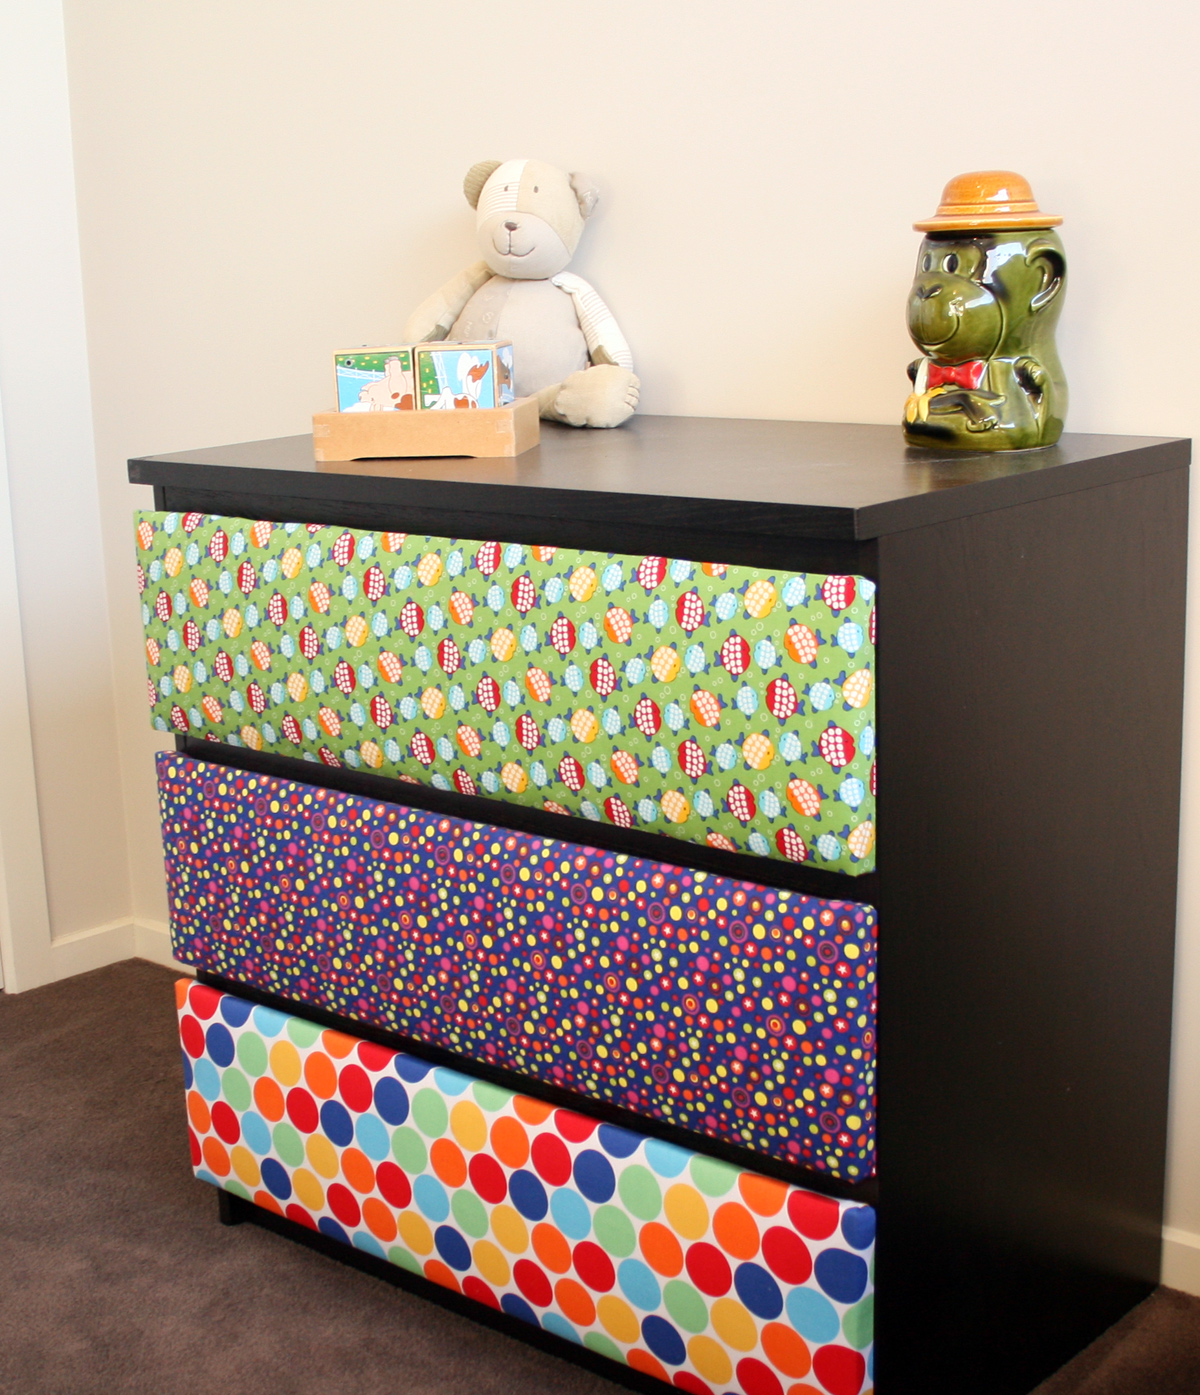 10 awesome ikea hacks for a kid s room - Como forrar muebles con tela ...